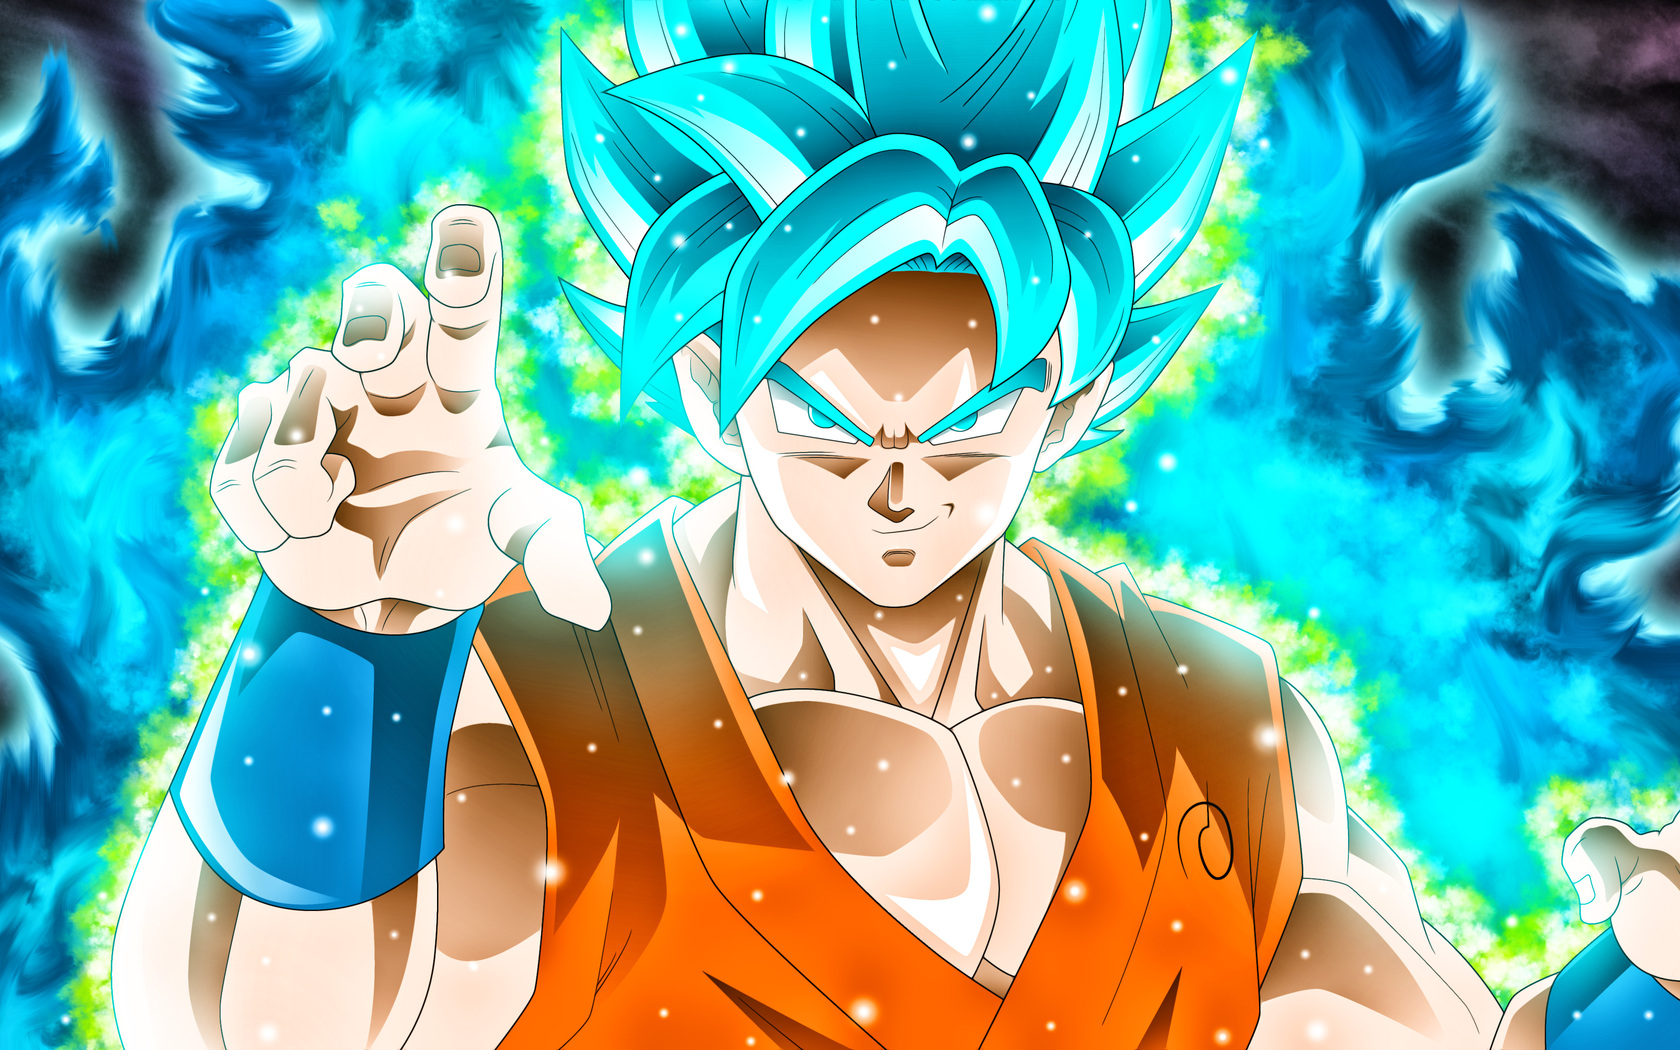 1680x1050 Goku Dragon Ball Super 1680x1050 Resolution HD 4k Wallpapers, Images, Backgrounds ...